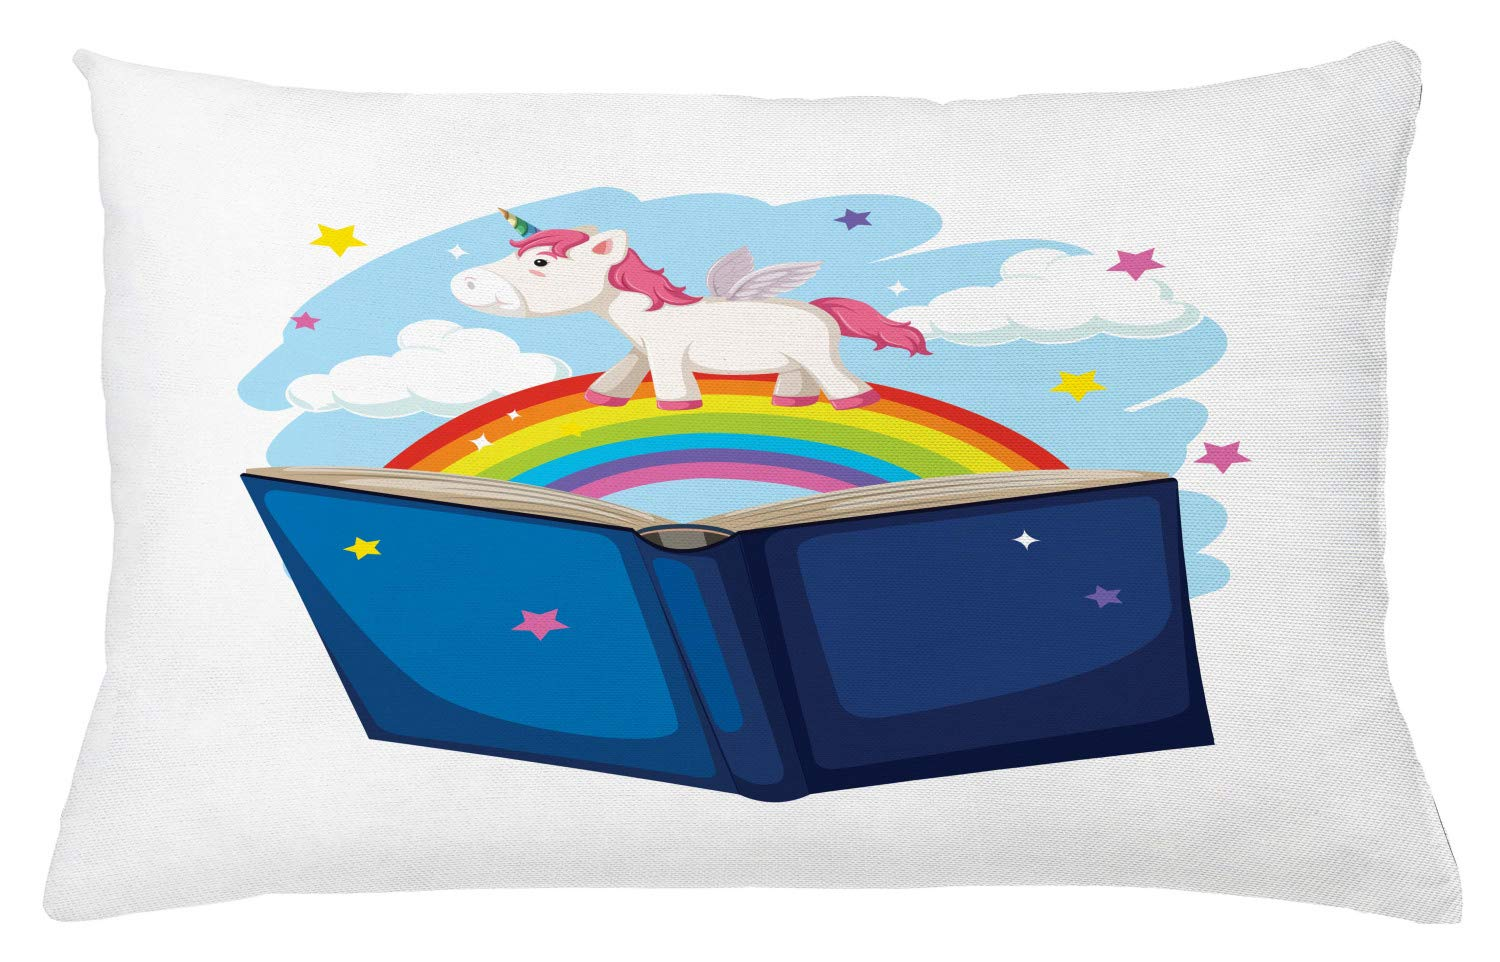 Lunarable Rainbow Throw Pillow Cushion Cover, Nursery Themed Happy Scene of a Winged Funny Unicorn and Open Book, Decorative Accent Pillow Case, 26'' X 16'', Night Blue and Multicolor